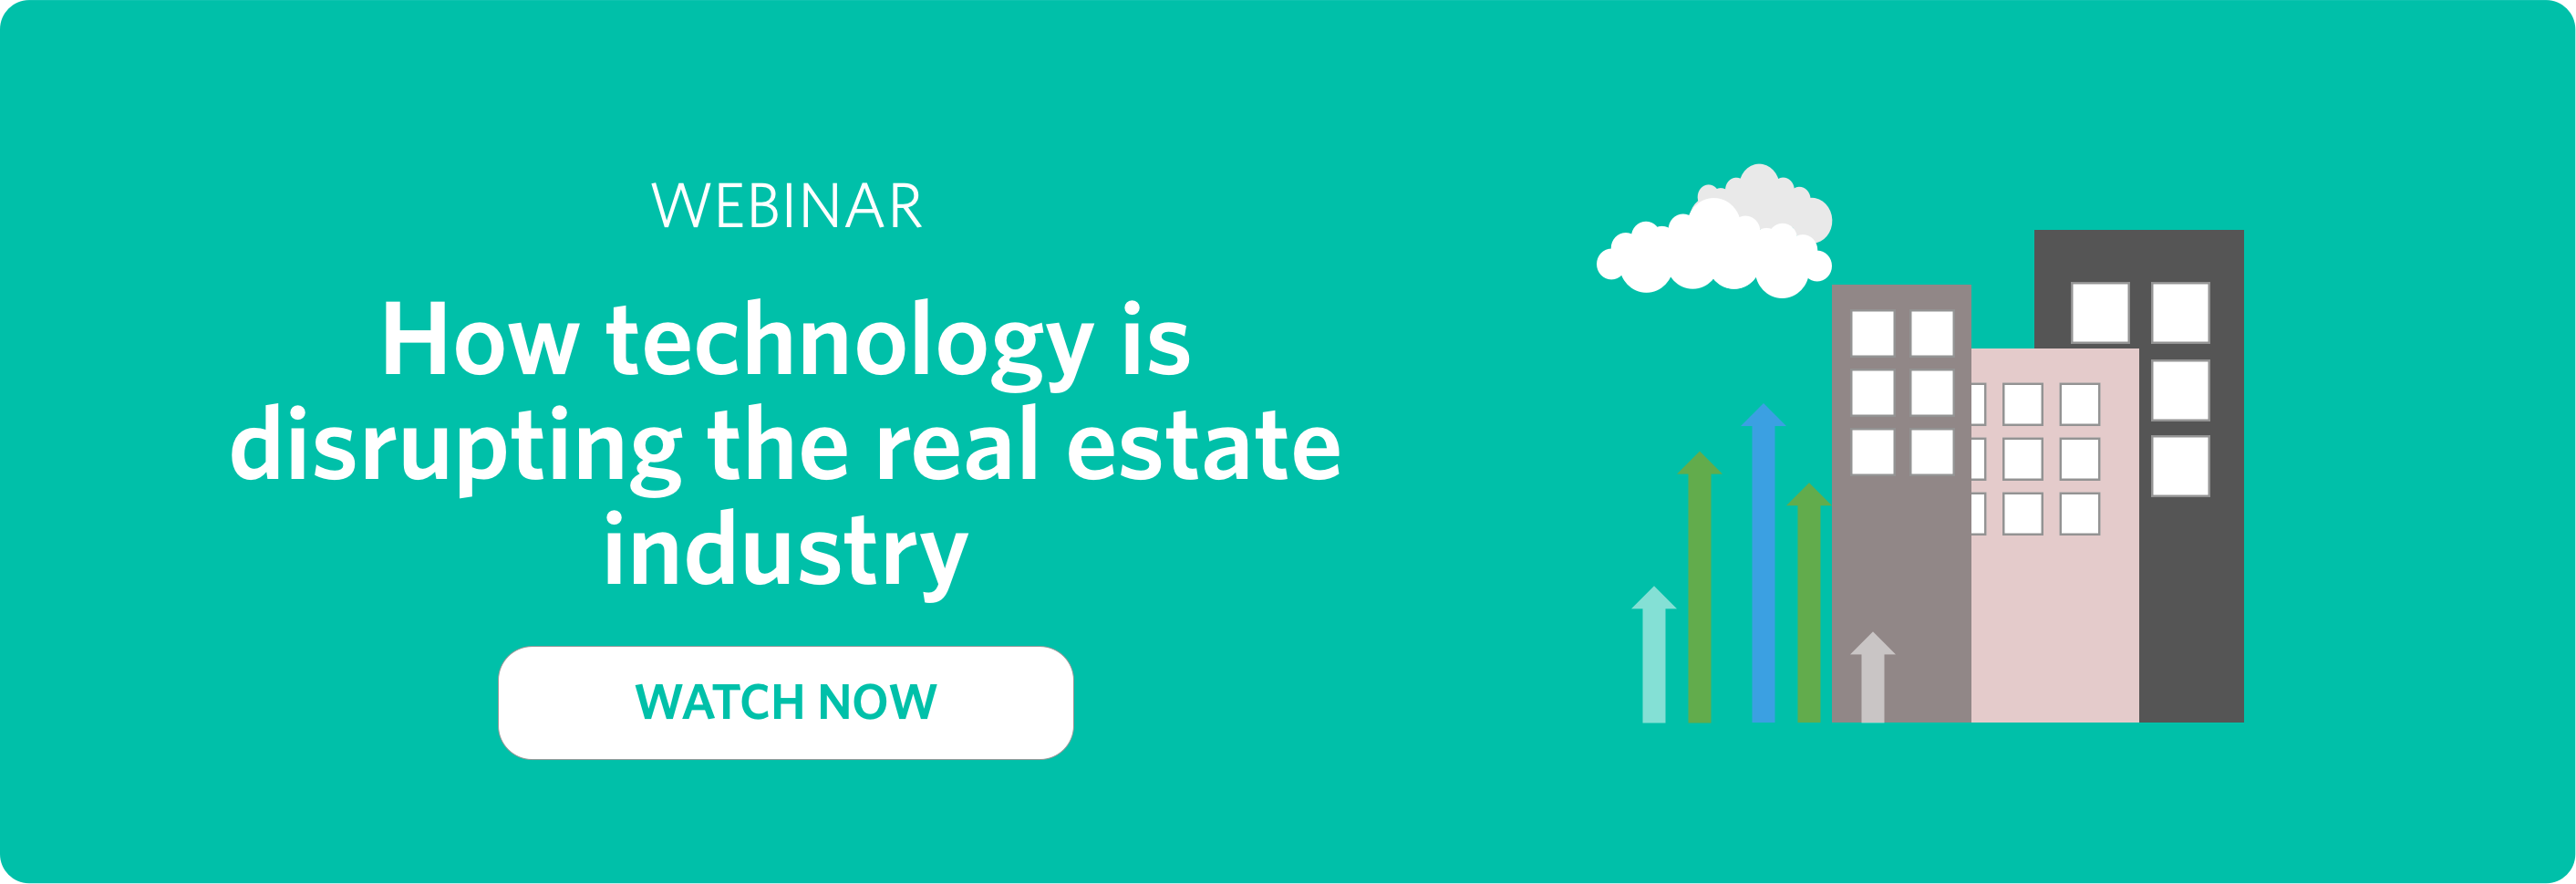 how technology is disrupting the real estate industry webinar